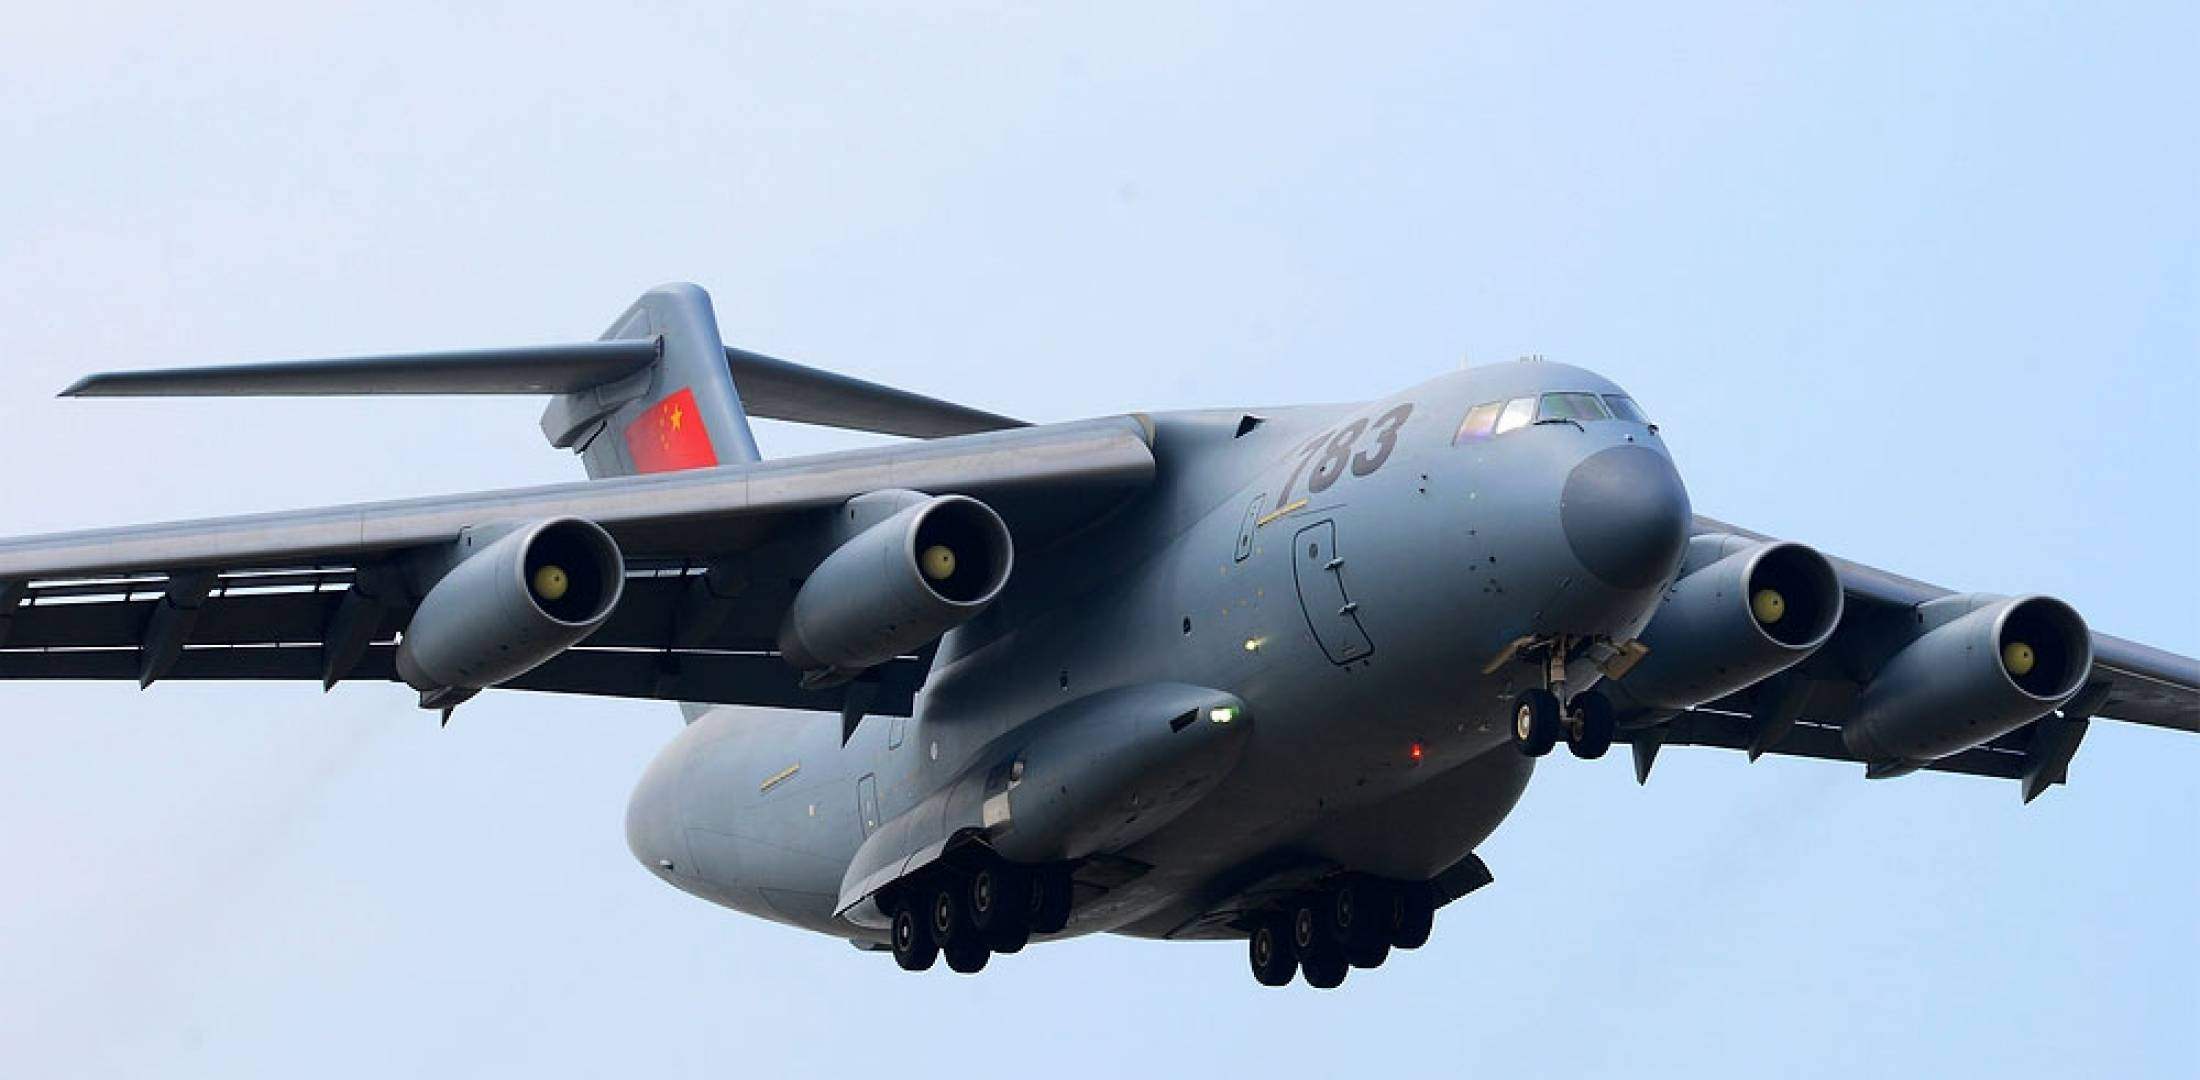 Y-20 in flight